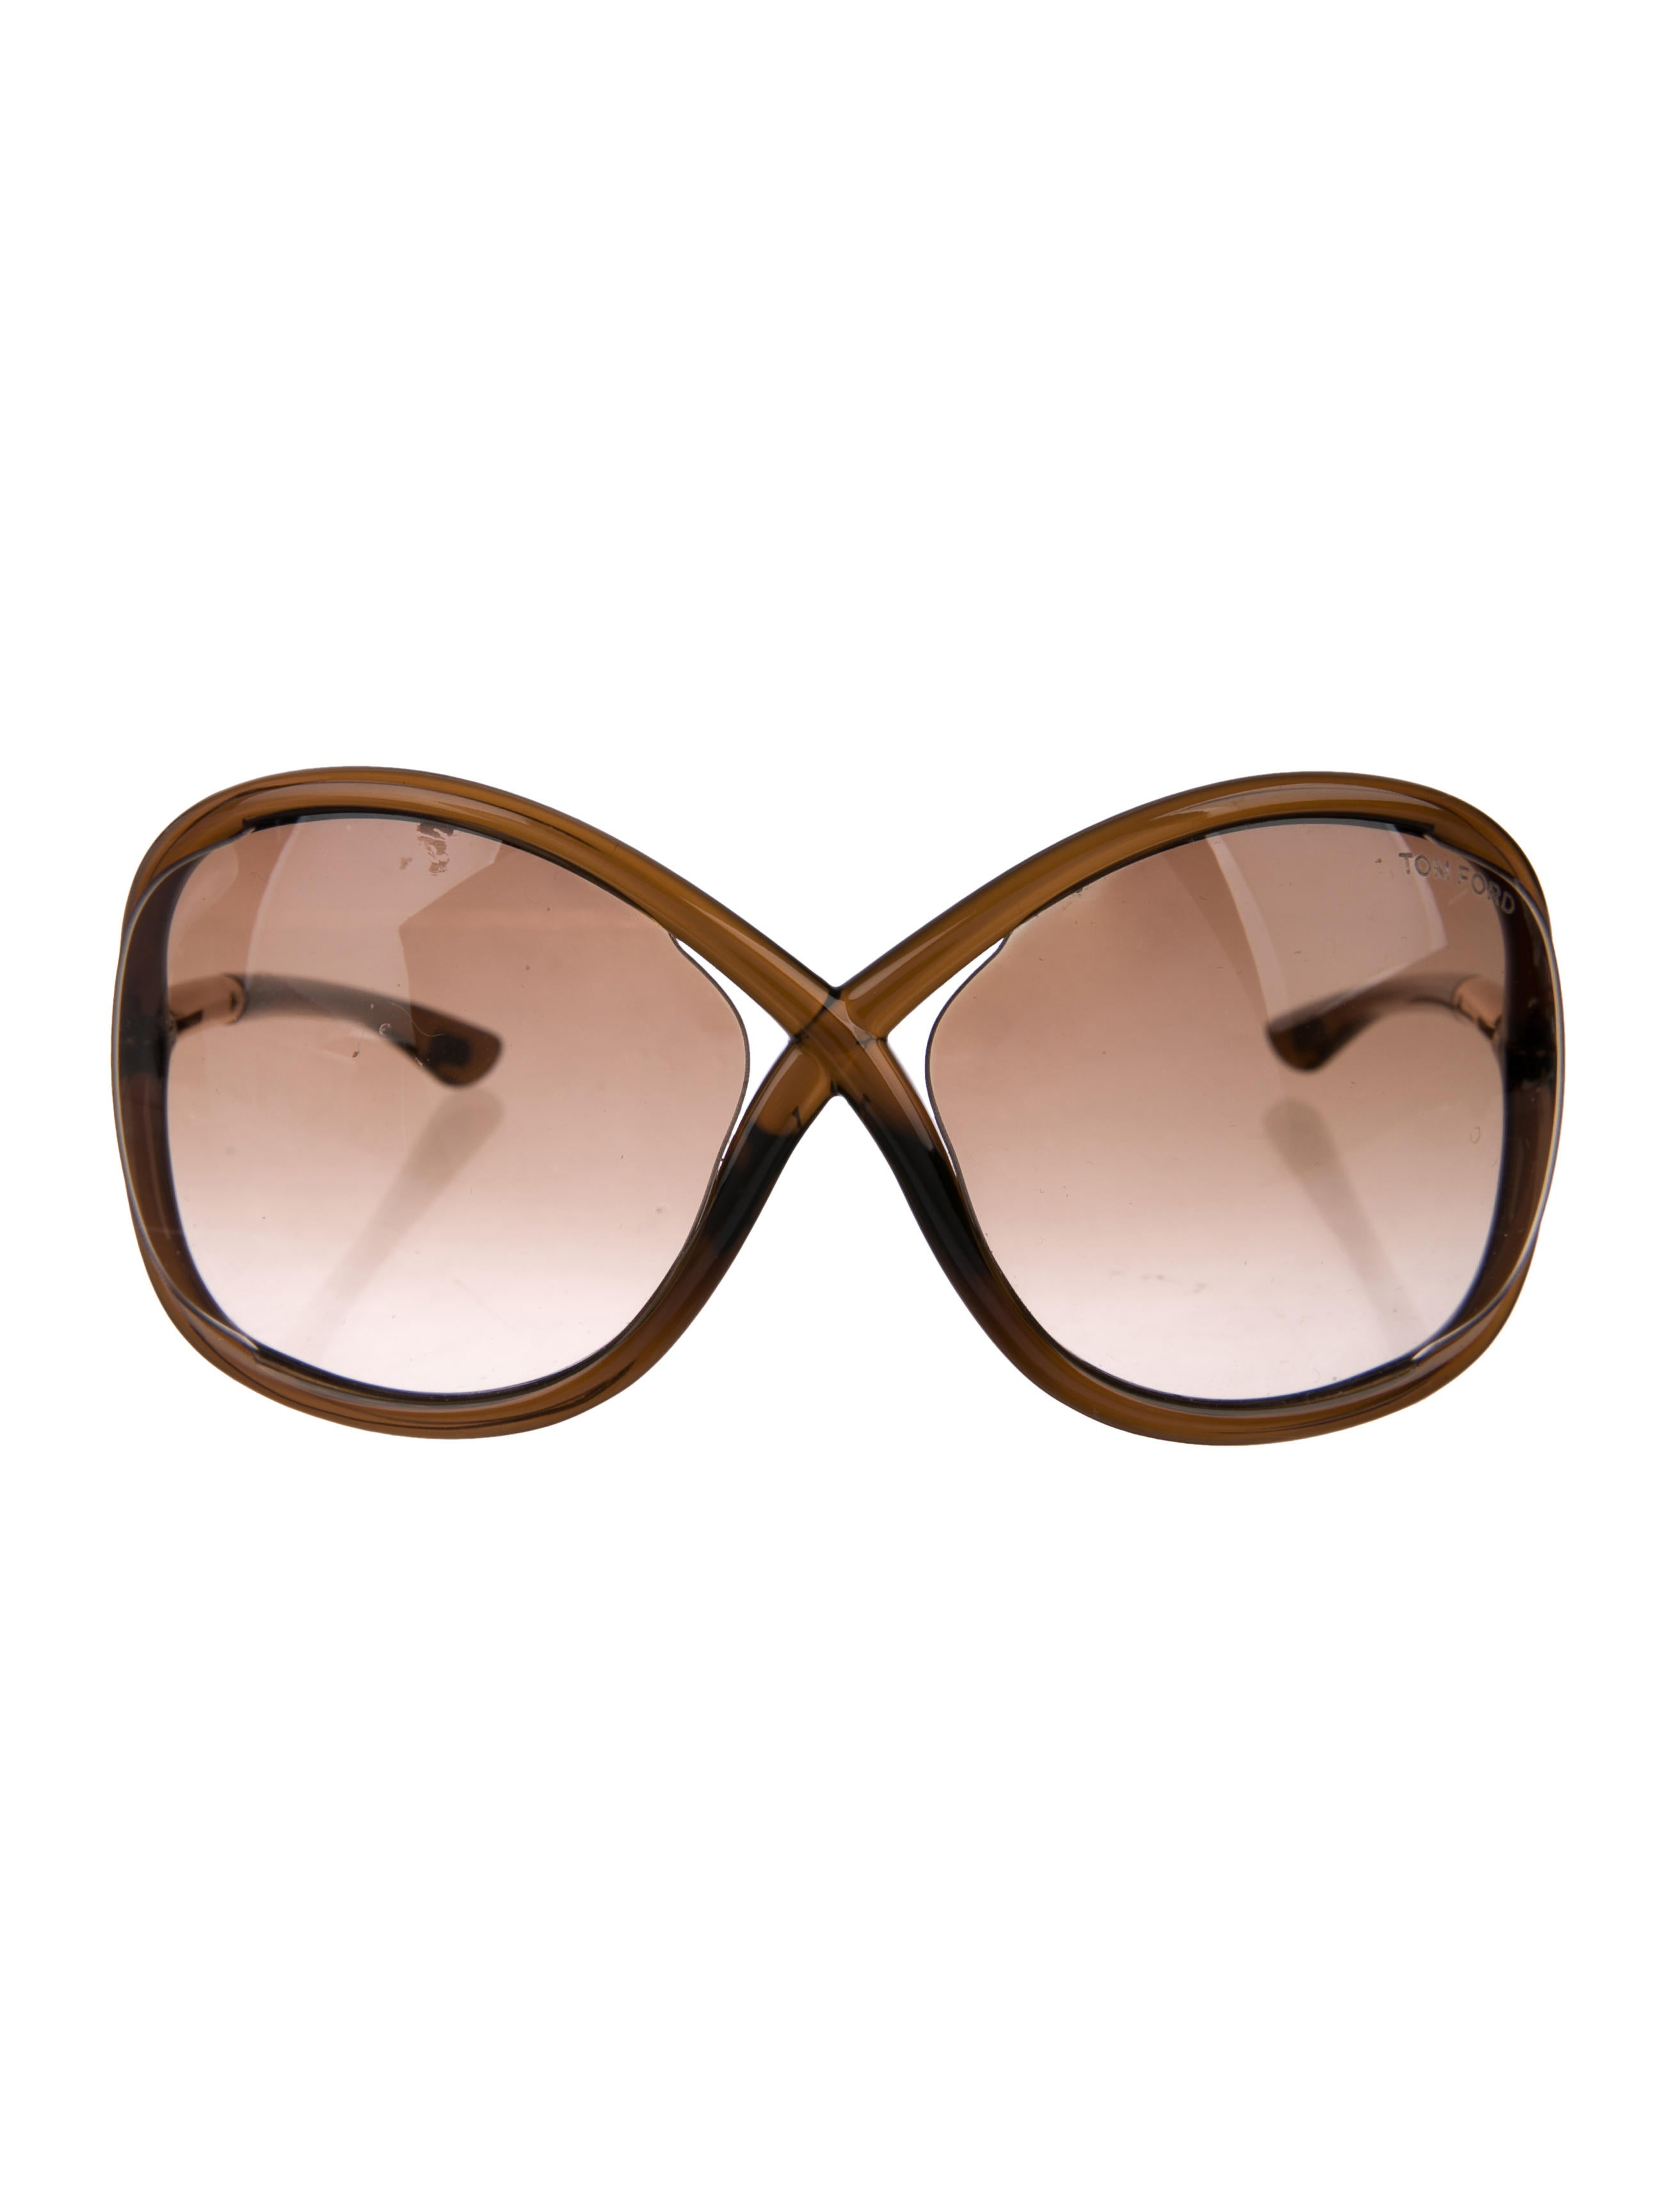 58ab4a64c21 Tom Ford Whitney Gradient Sunglasses - Accessories - TOM44068